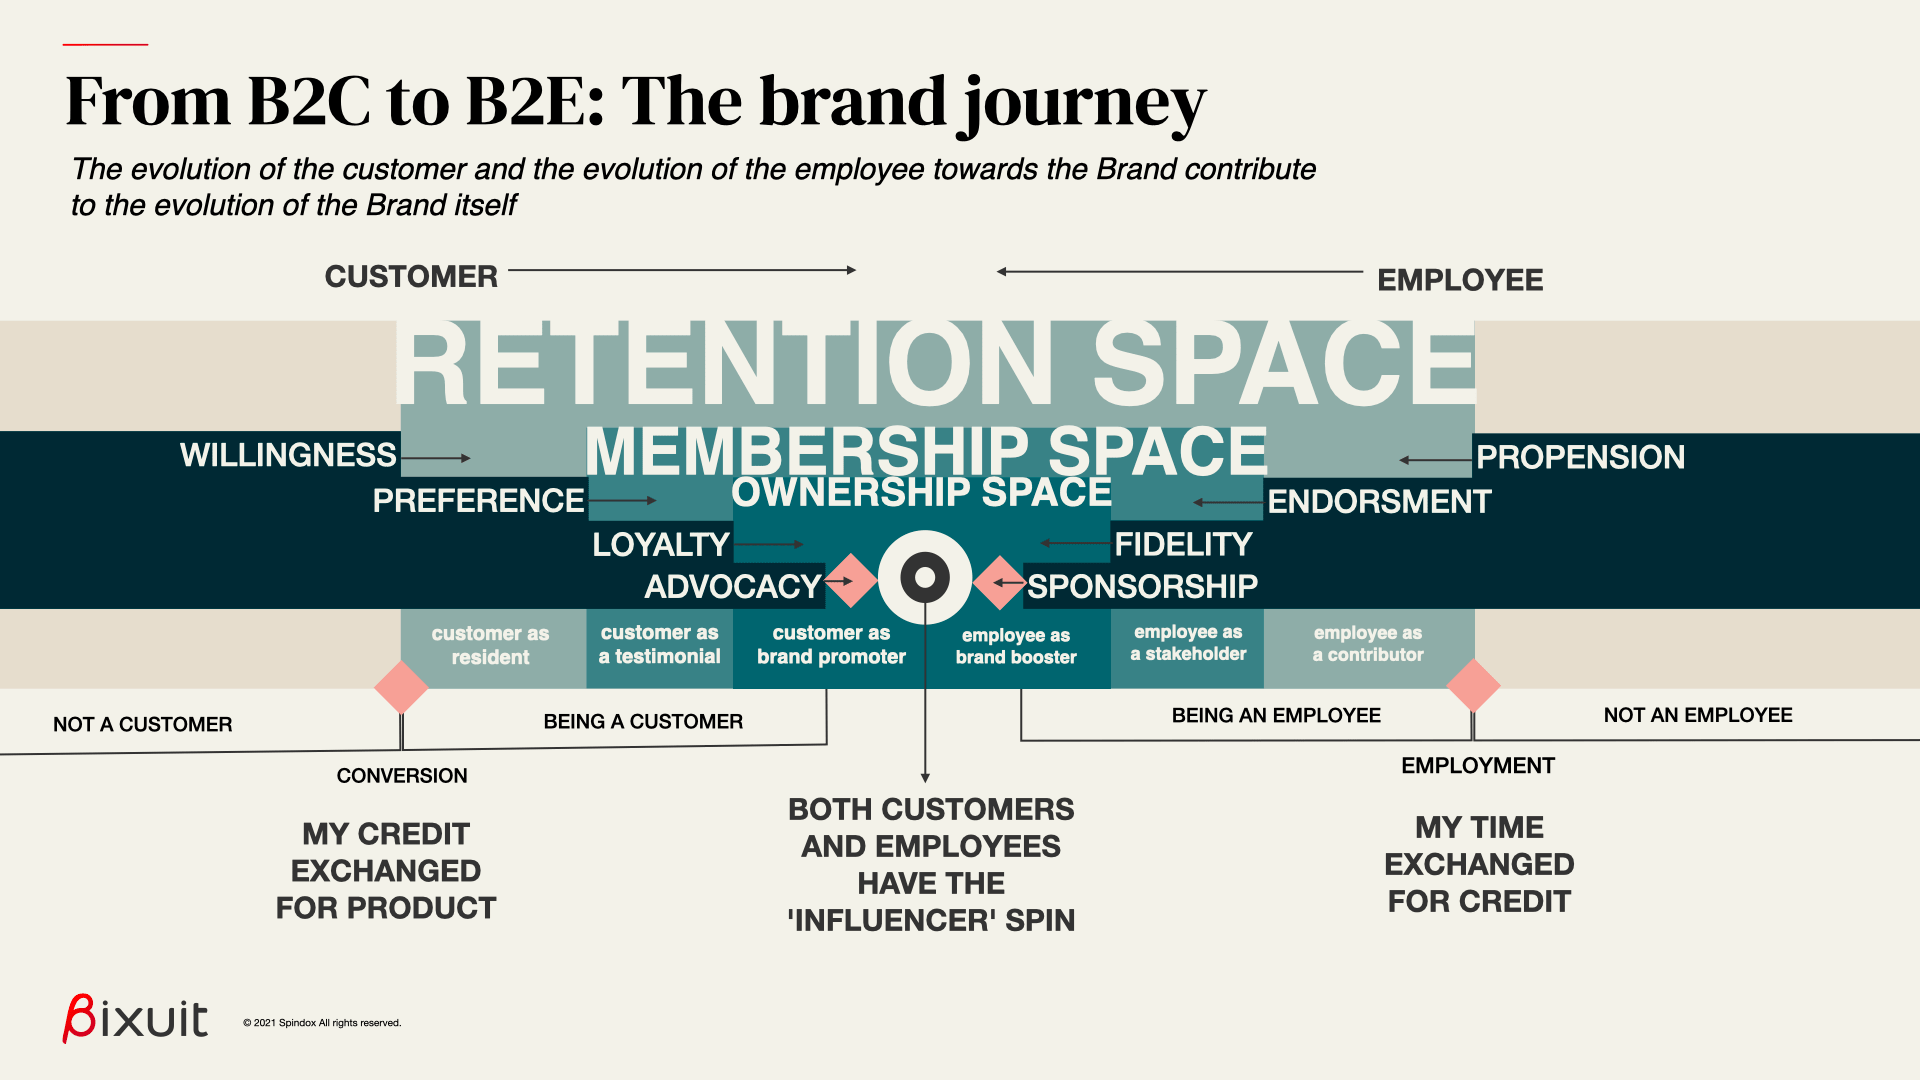 evolution of both customer and employee contribute to the evolution of the brand itself